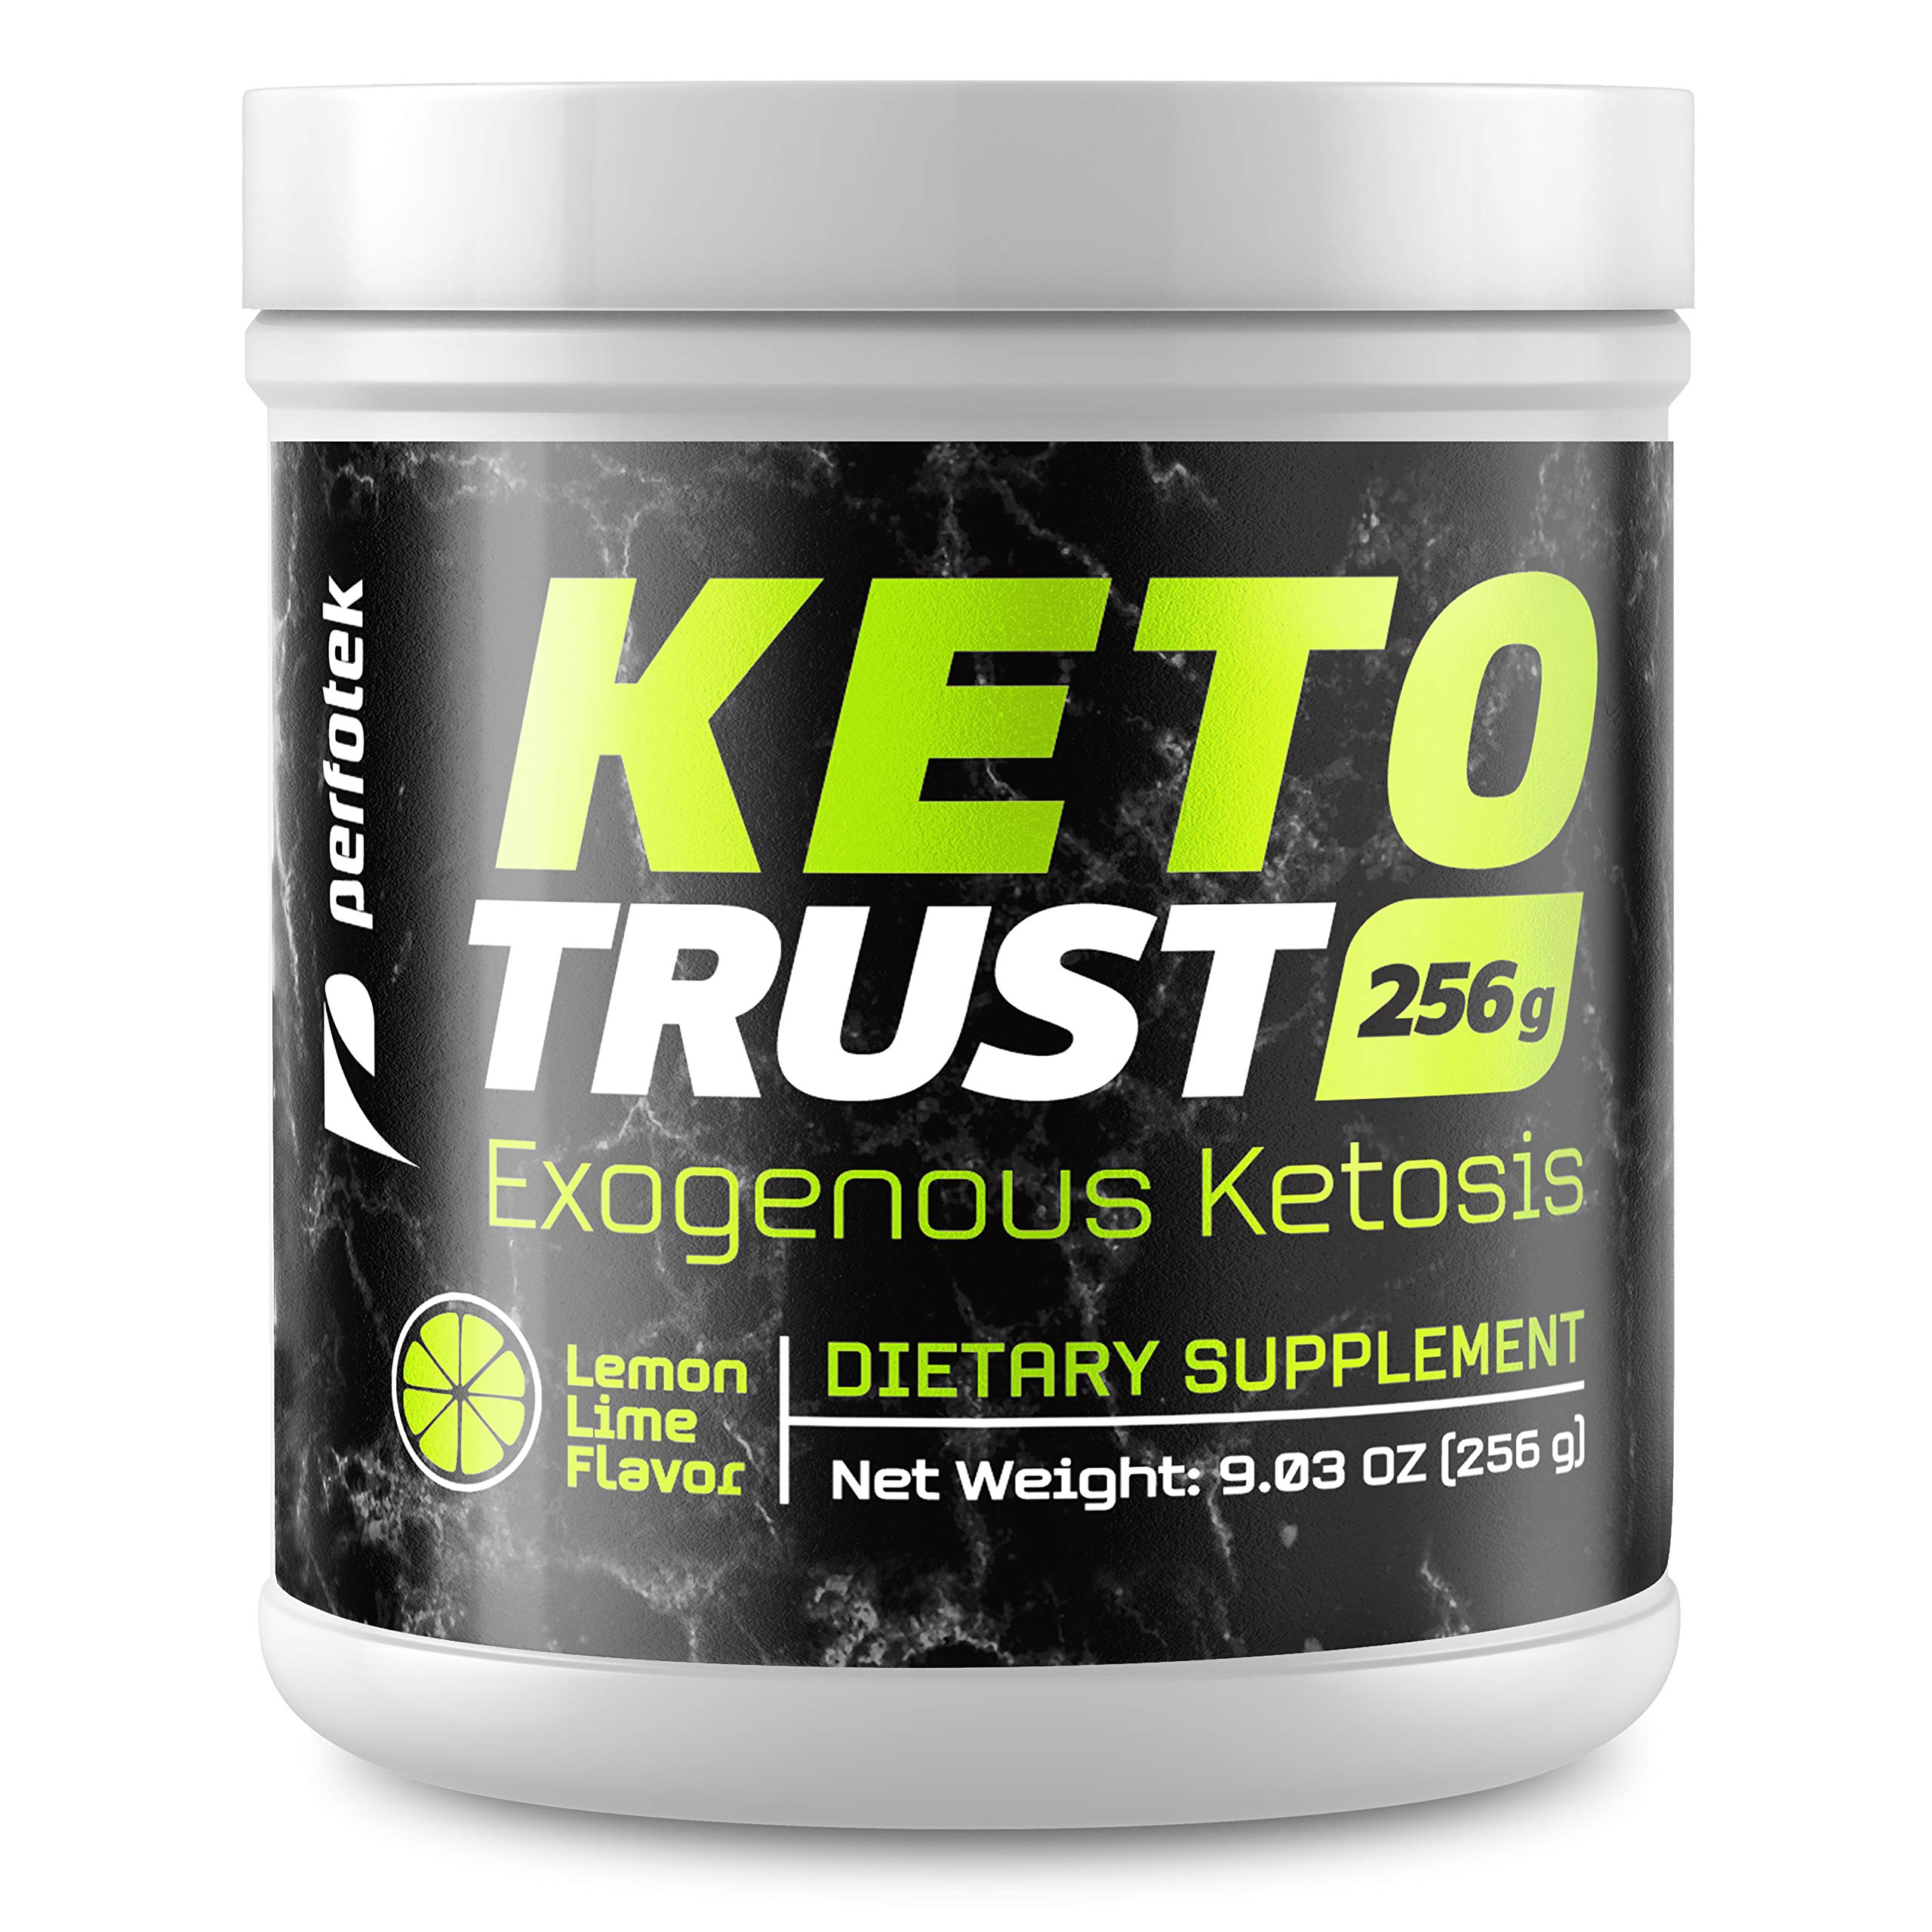 Perfotek Keto Powder - Instant Ketosis - Exogenous Ketones Weight Loss Supplements with BHB and Electrolytes for Ketogenic Diet - Lemon Lime by PERFOTEK